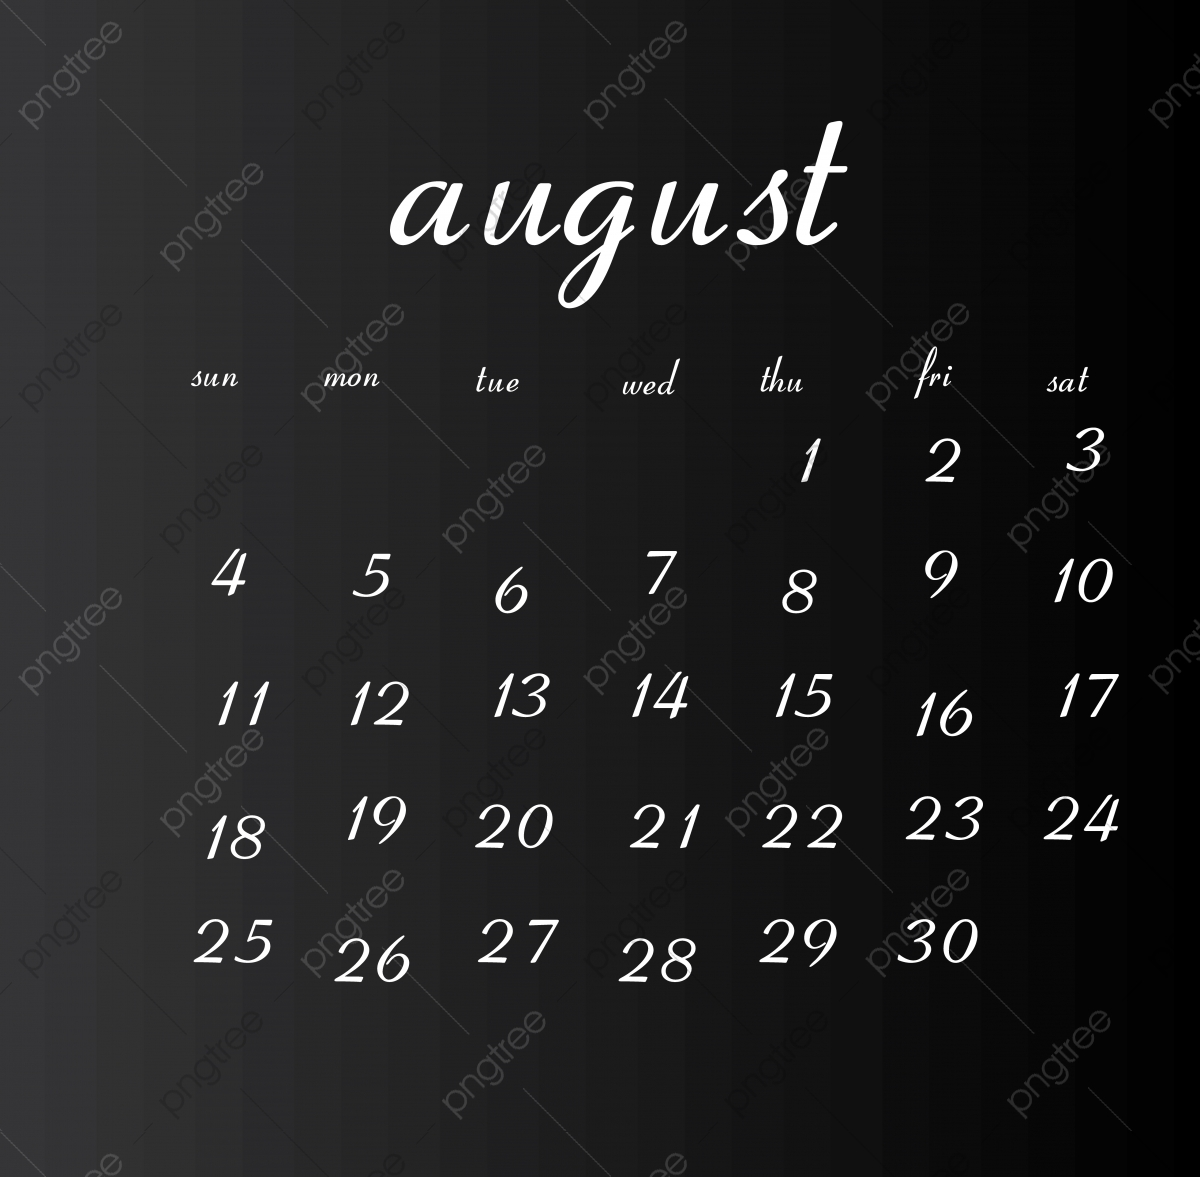 1979 Calendar August.August 2019 Month Calendar Clean White Png And Vector With